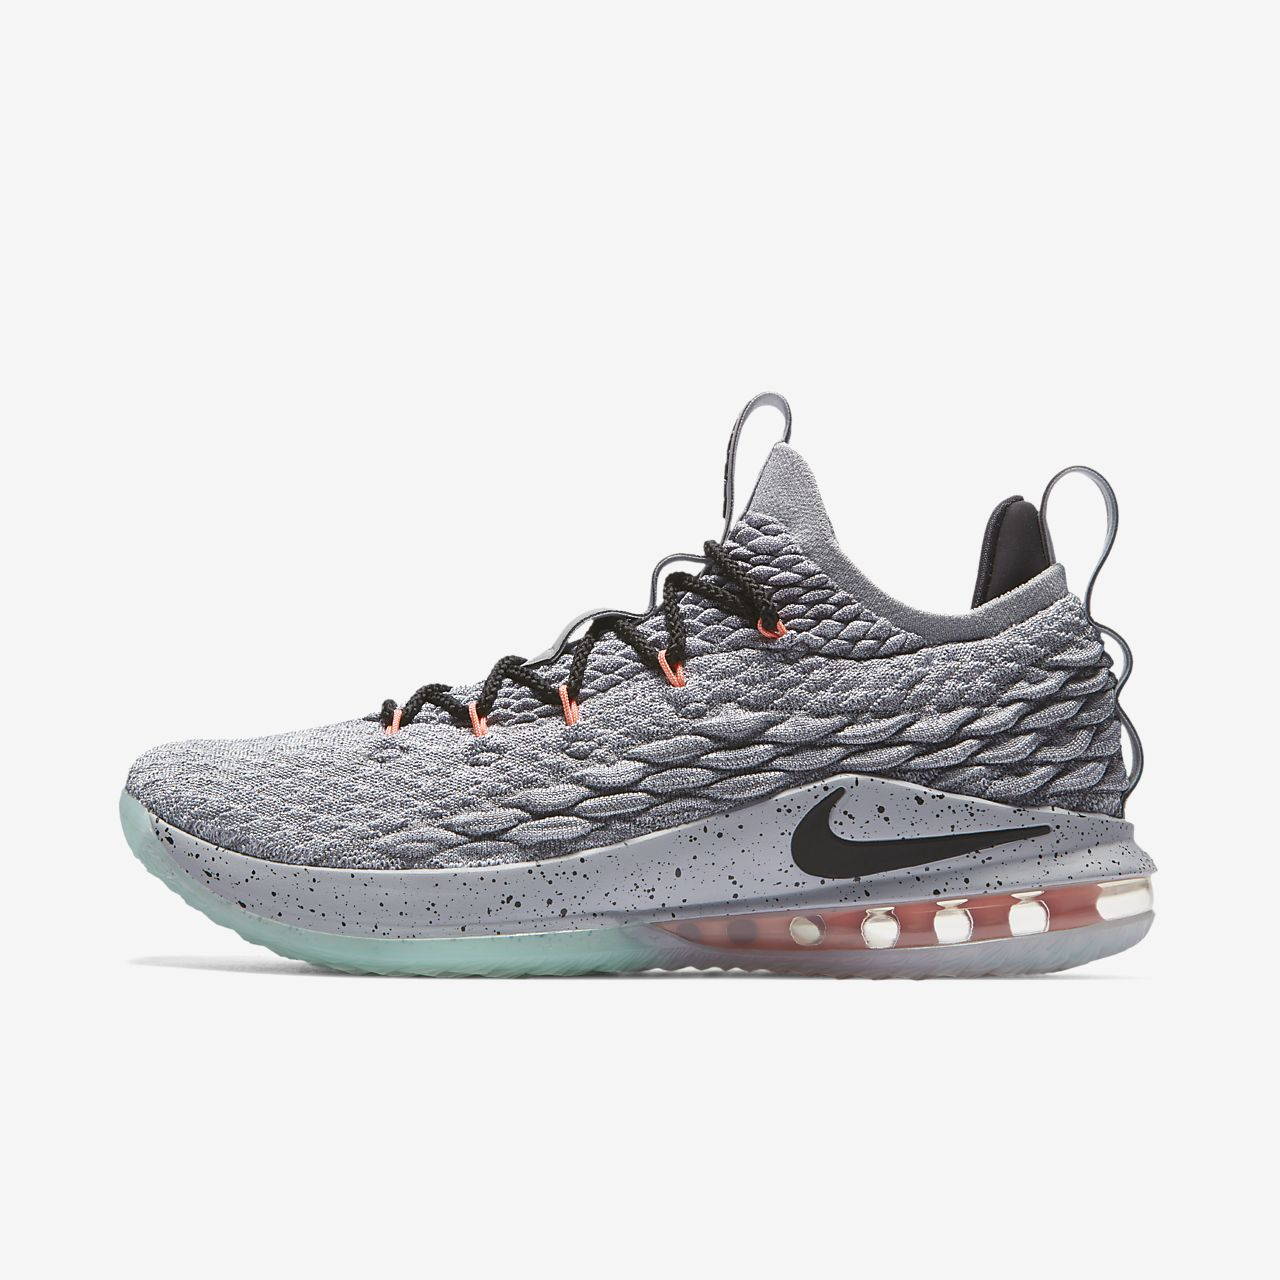 6f0aaea74ce LeBron 15 Mowabb Watch Sells Out in 23 minute Window  Get It